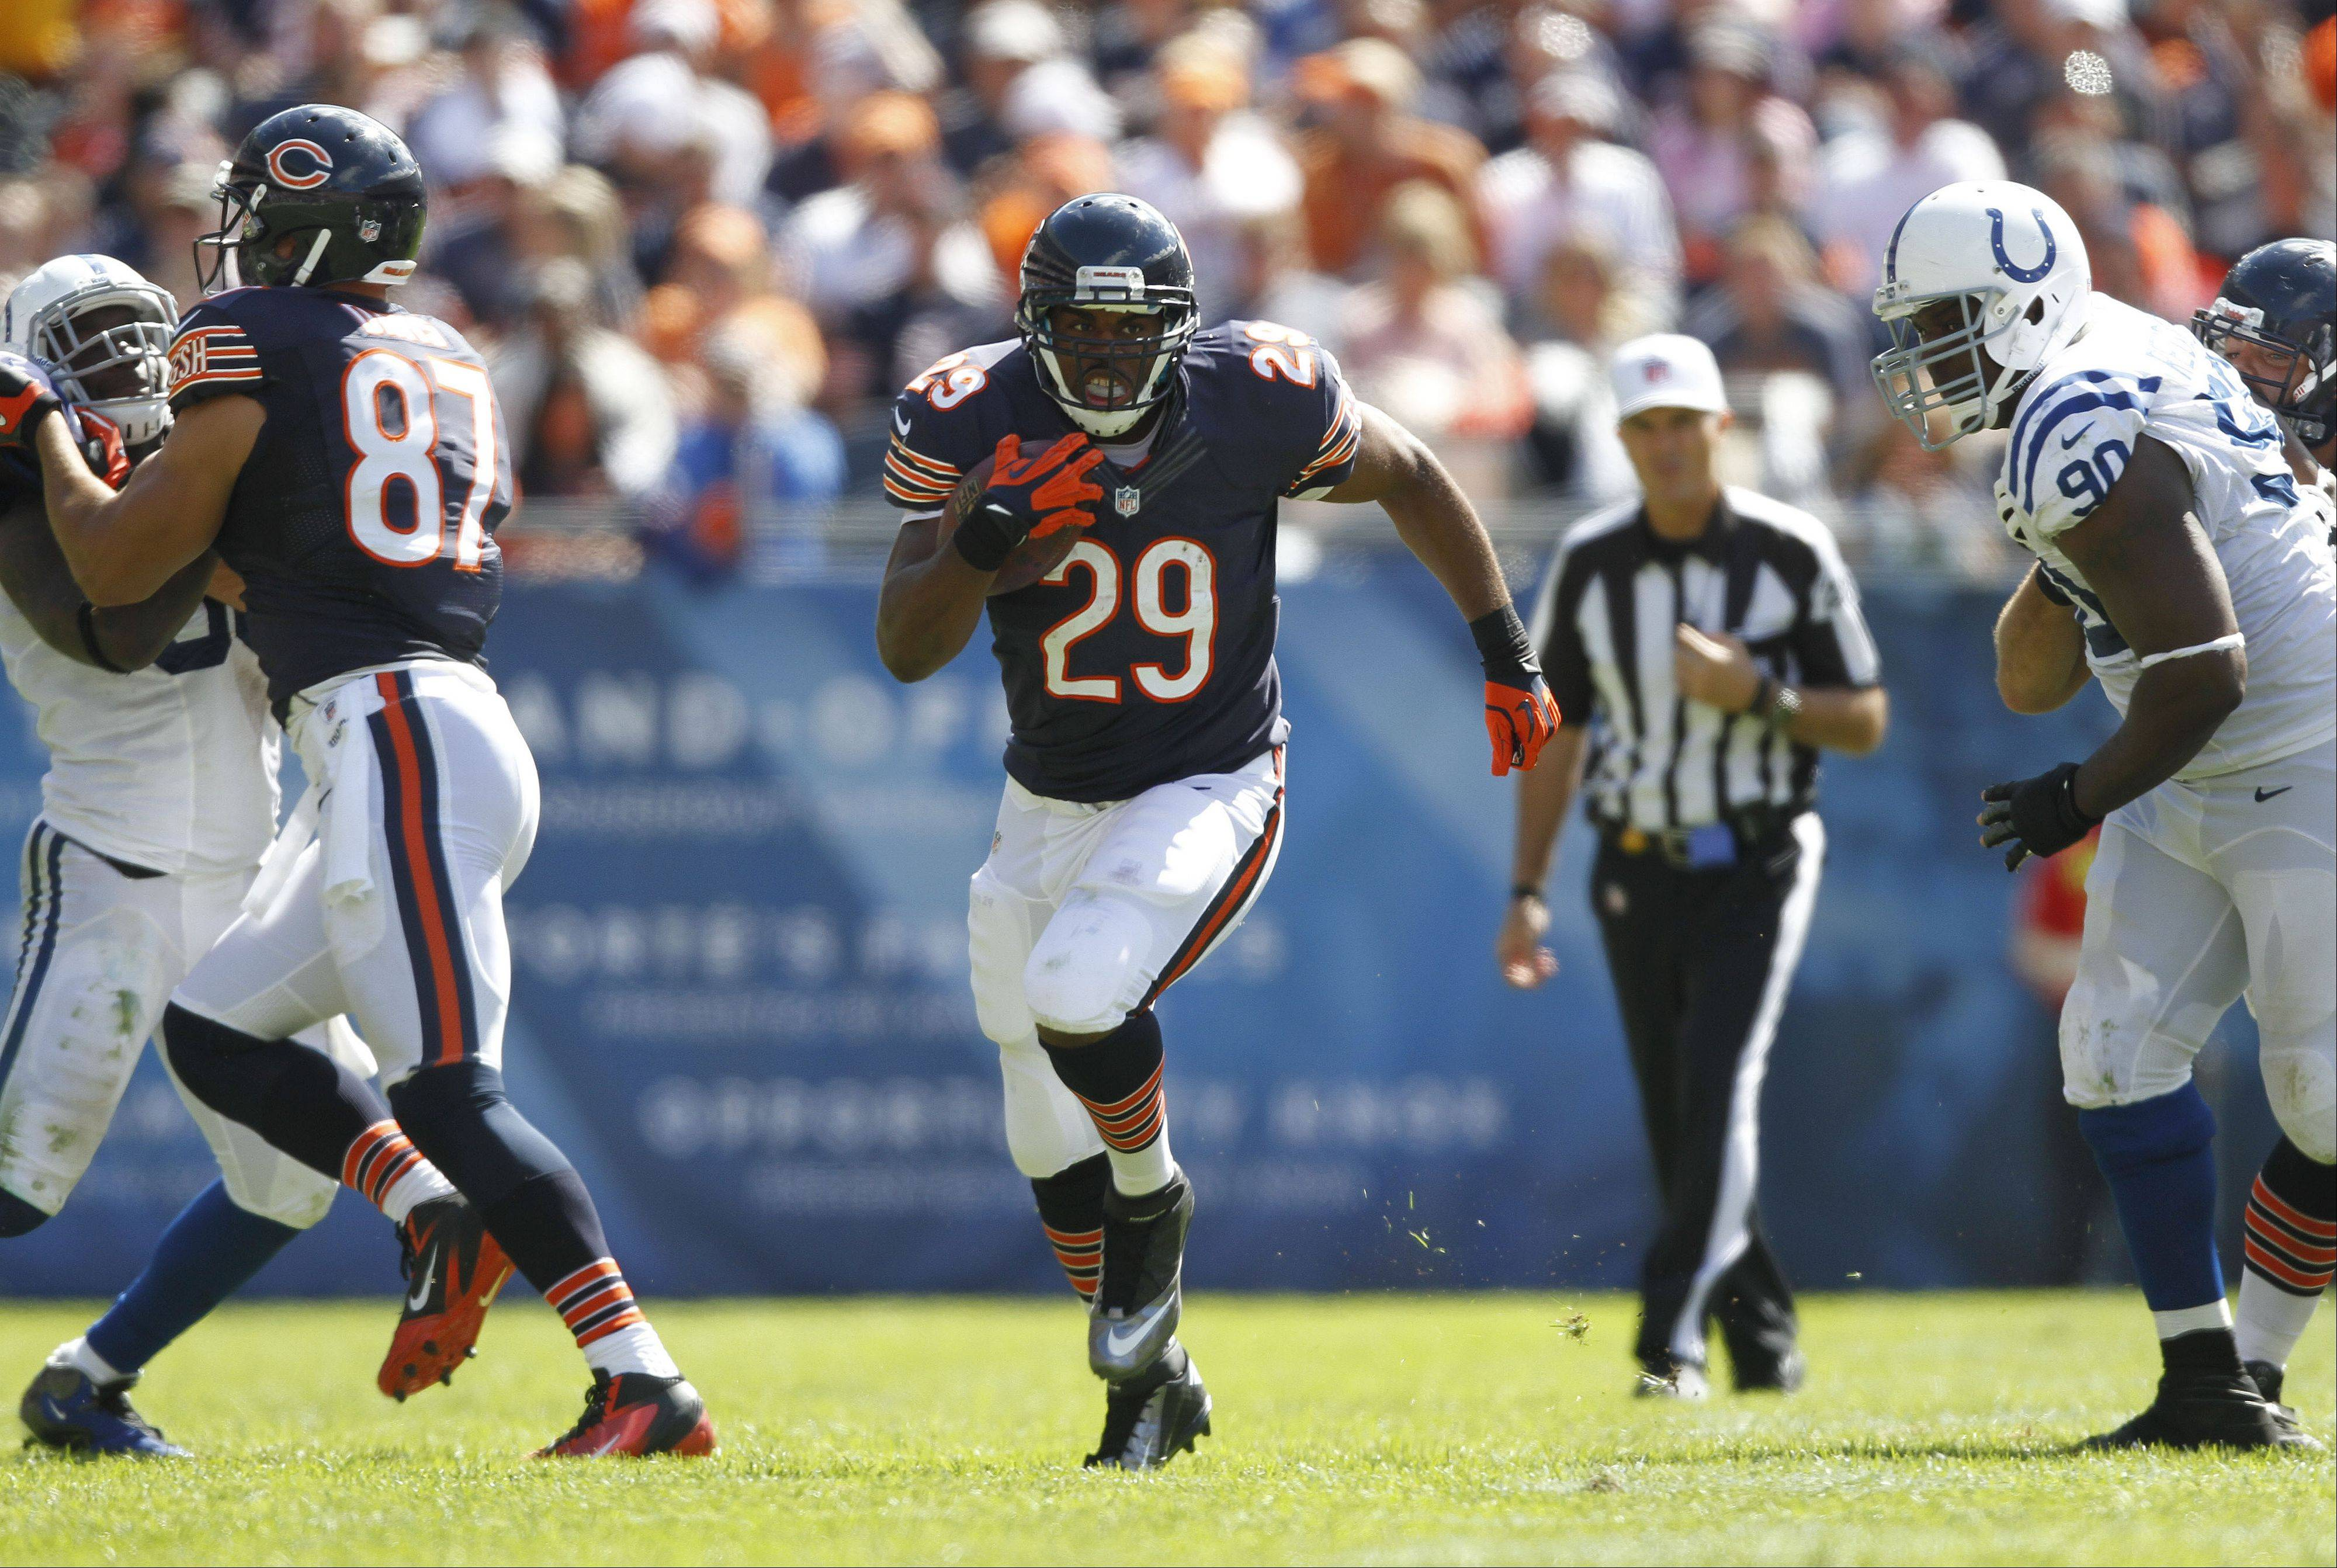 Steve Lundy/slundy@dailyherald.com ¬ Chicago Bears running back Michael Bush finds an opening during the Bears season opener against the Indianapolis Colts Sunday at Soldier Field in Chicago. The Bears won 41-21 ¬ ¬